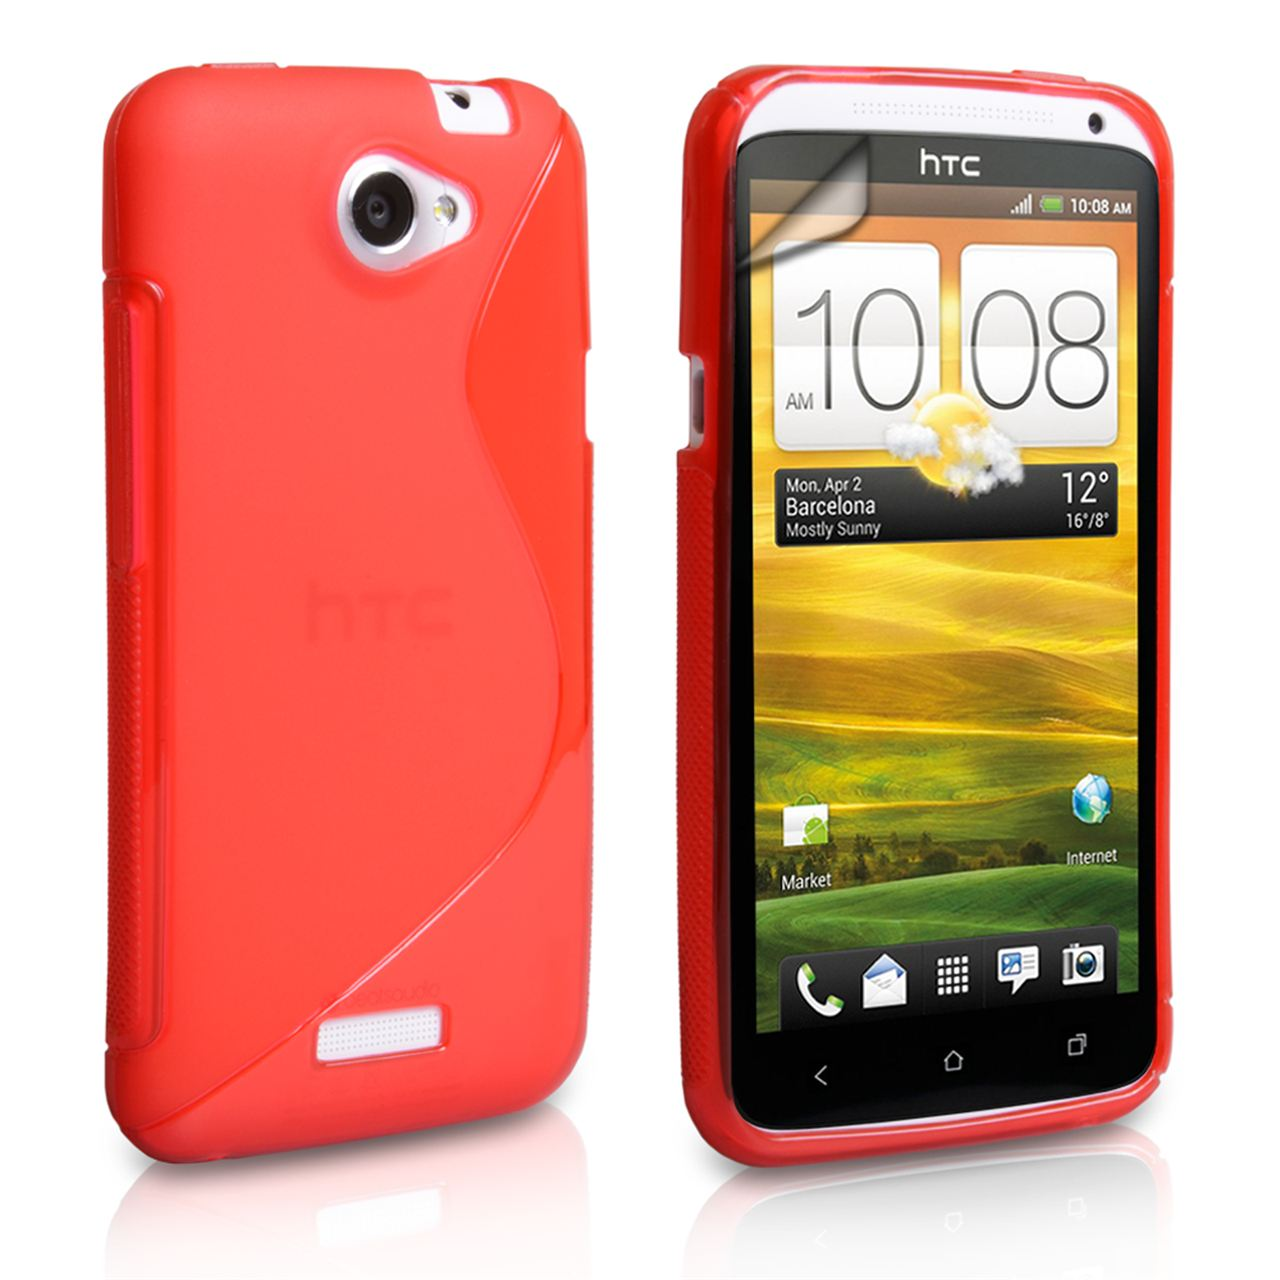 Caseflex HTC One X Silicone Gel S-Line Case - Red